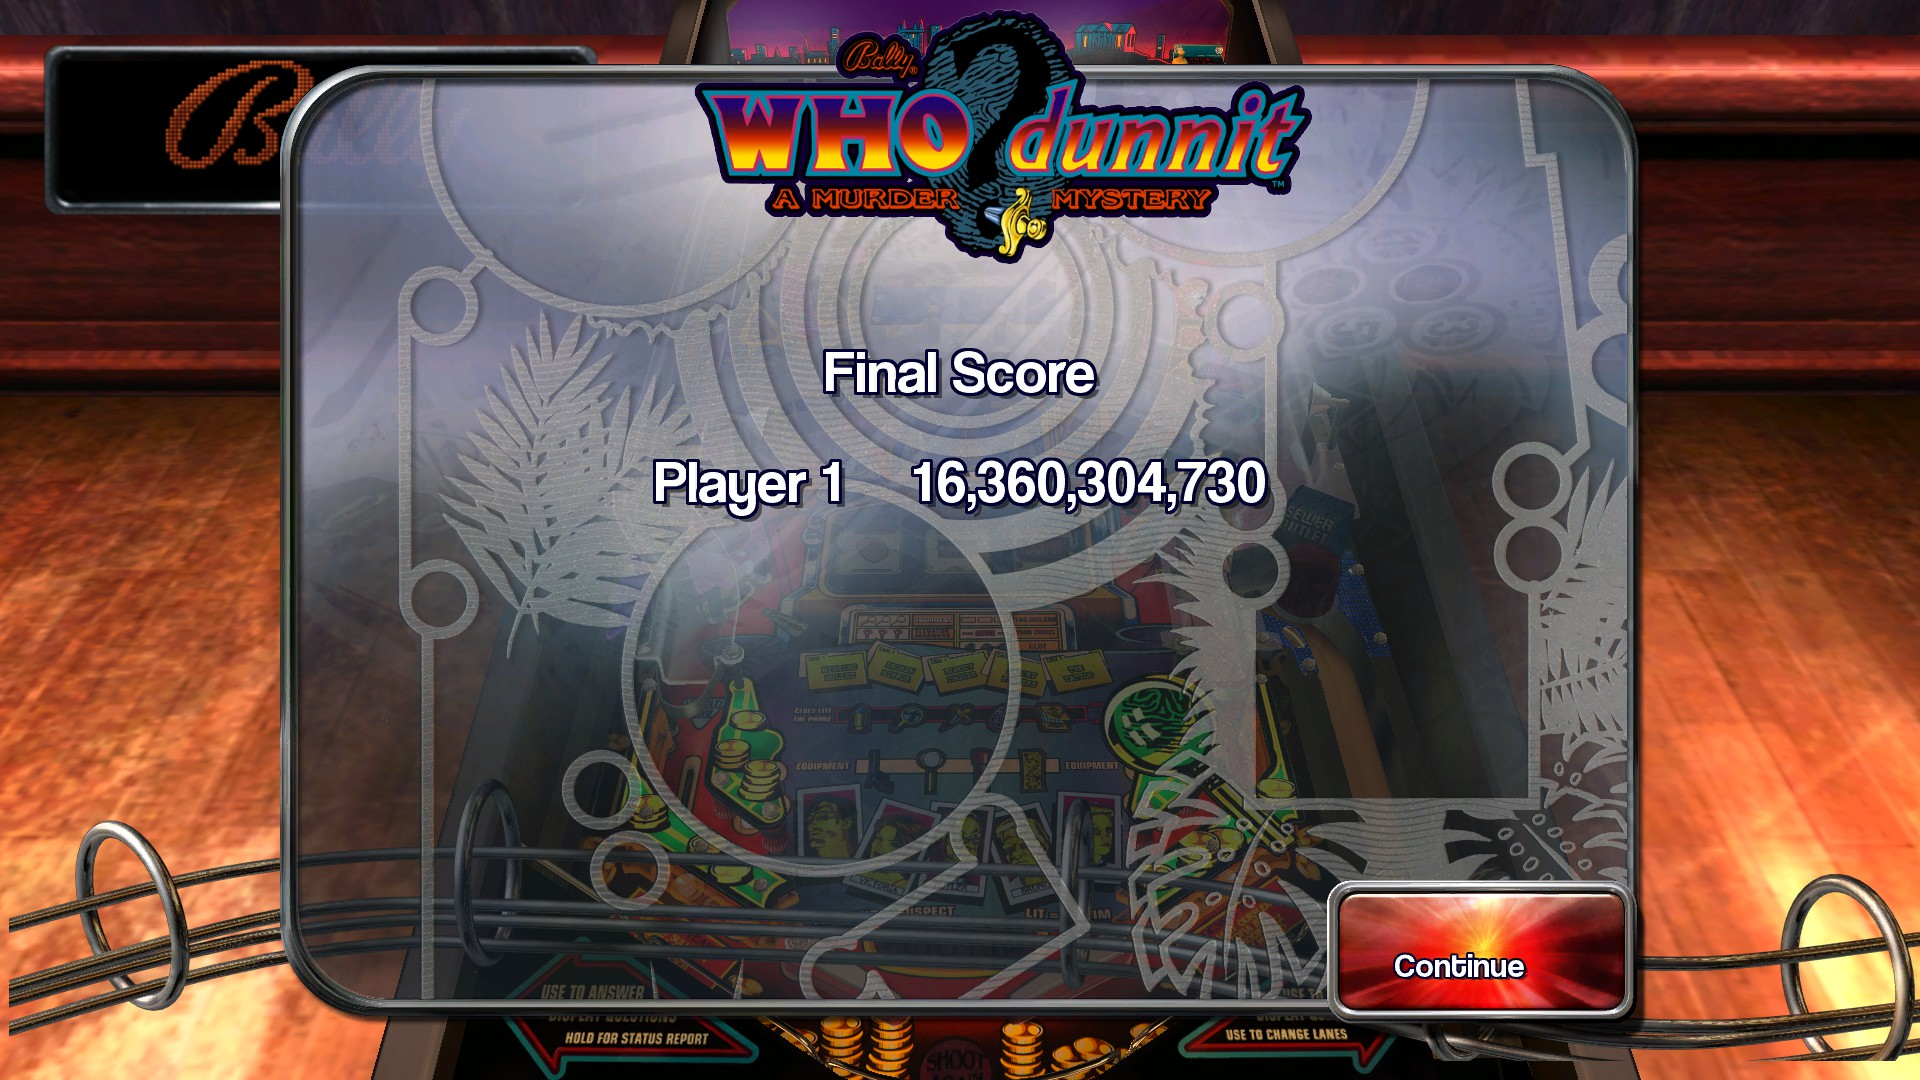 TheTrickster: Pinball Arcade: WHO Dunnit (PC) 16,360,304,730 points on 2015-11-23 02:11:06